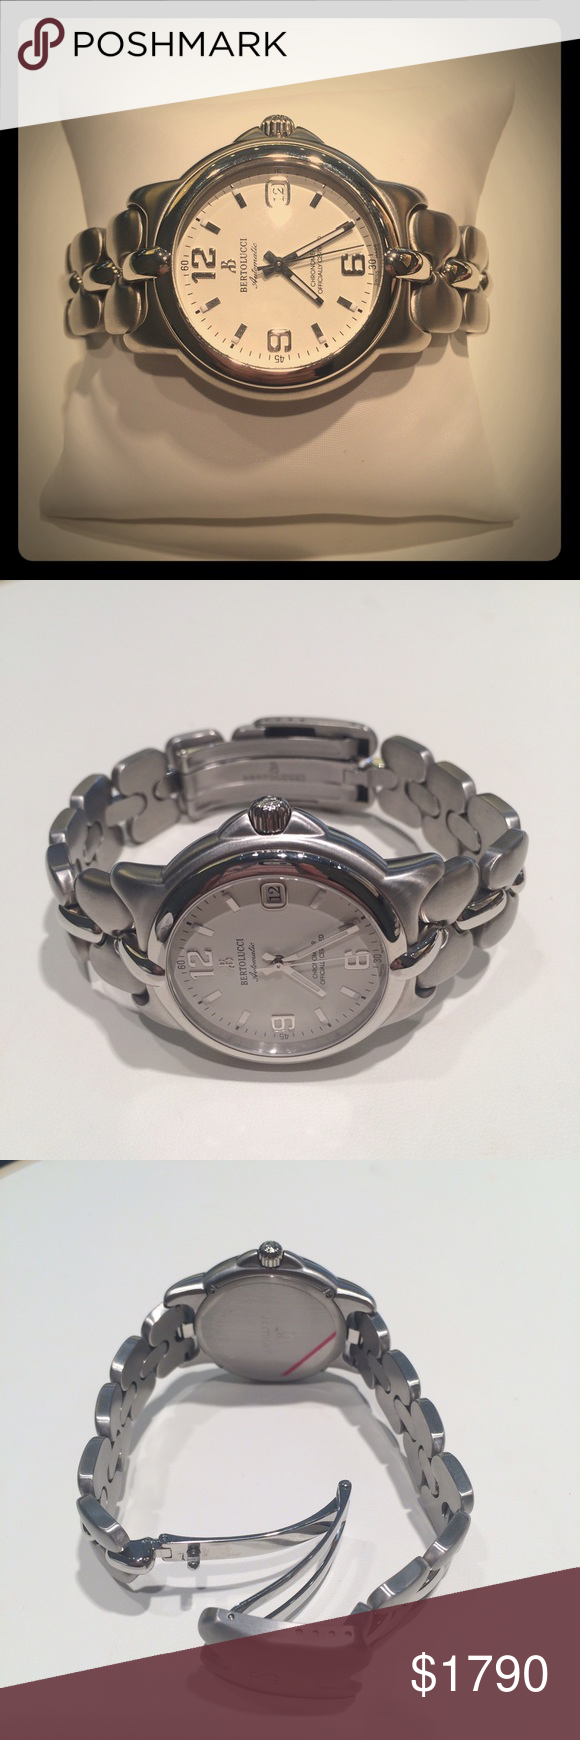 """NWT Bertolucci Stainless Steel Automatic Watch NWT Bertolucci Stainless Steel Automatic Watch.  Case measures approximately 1 1/2""""W.  Chronometer certified.  Date feature.  Easy read dial.  Great everyday watch. Bertolucci Accessories Watches"""